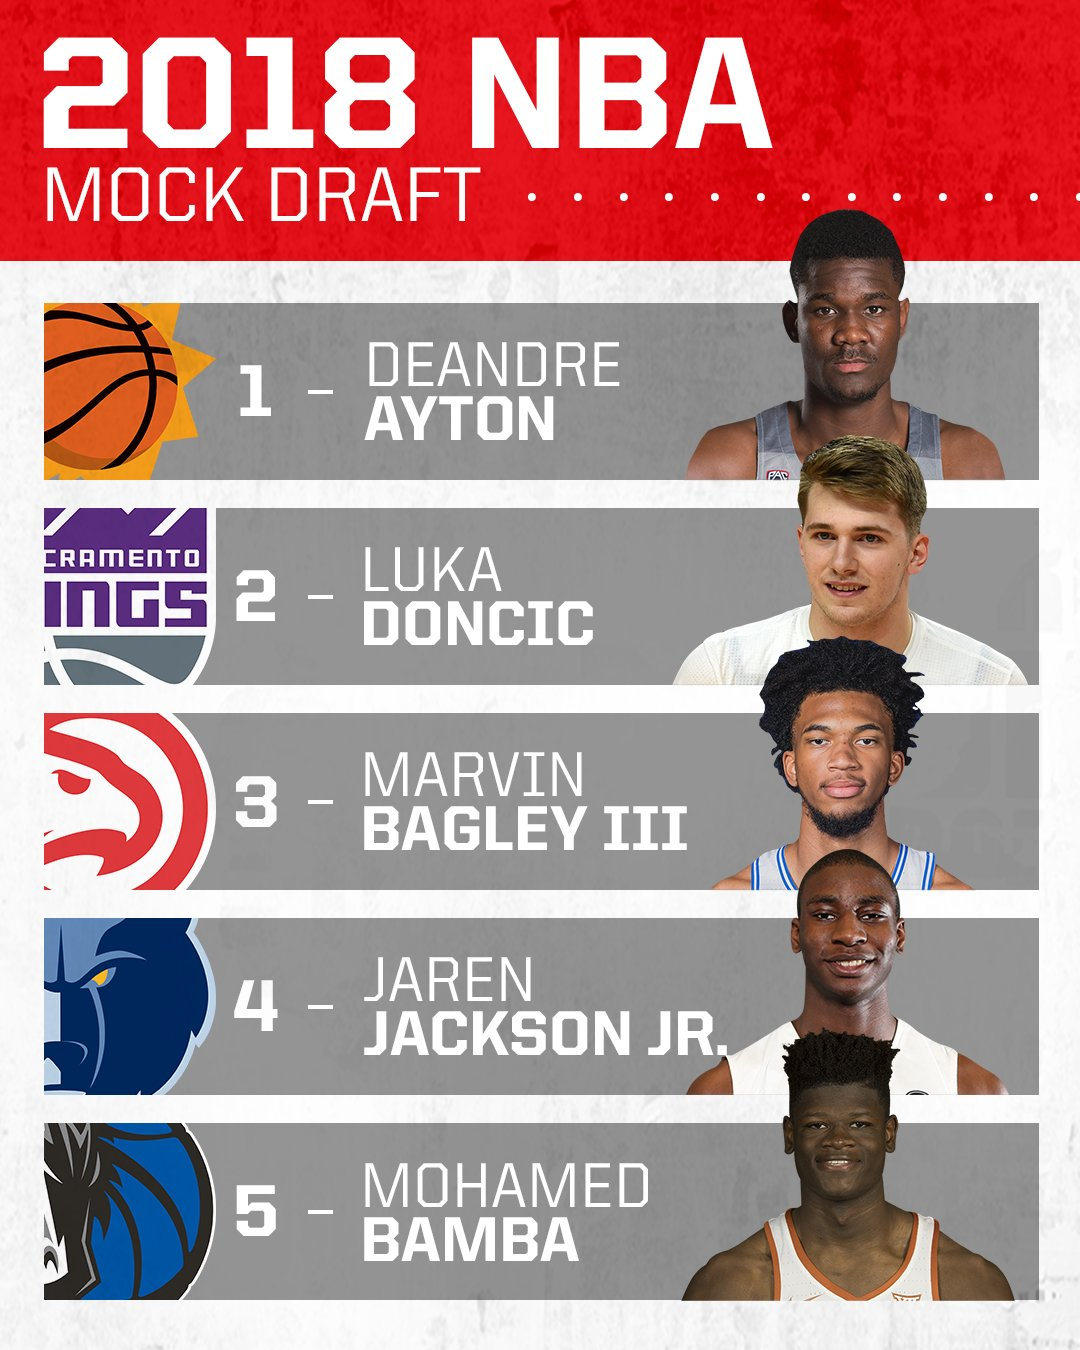 This is our top five following the lottery. Here's the link to our latest mock draft: https://t.co/0BJ7EB41TB https://t.co/wTUrbgFcj0